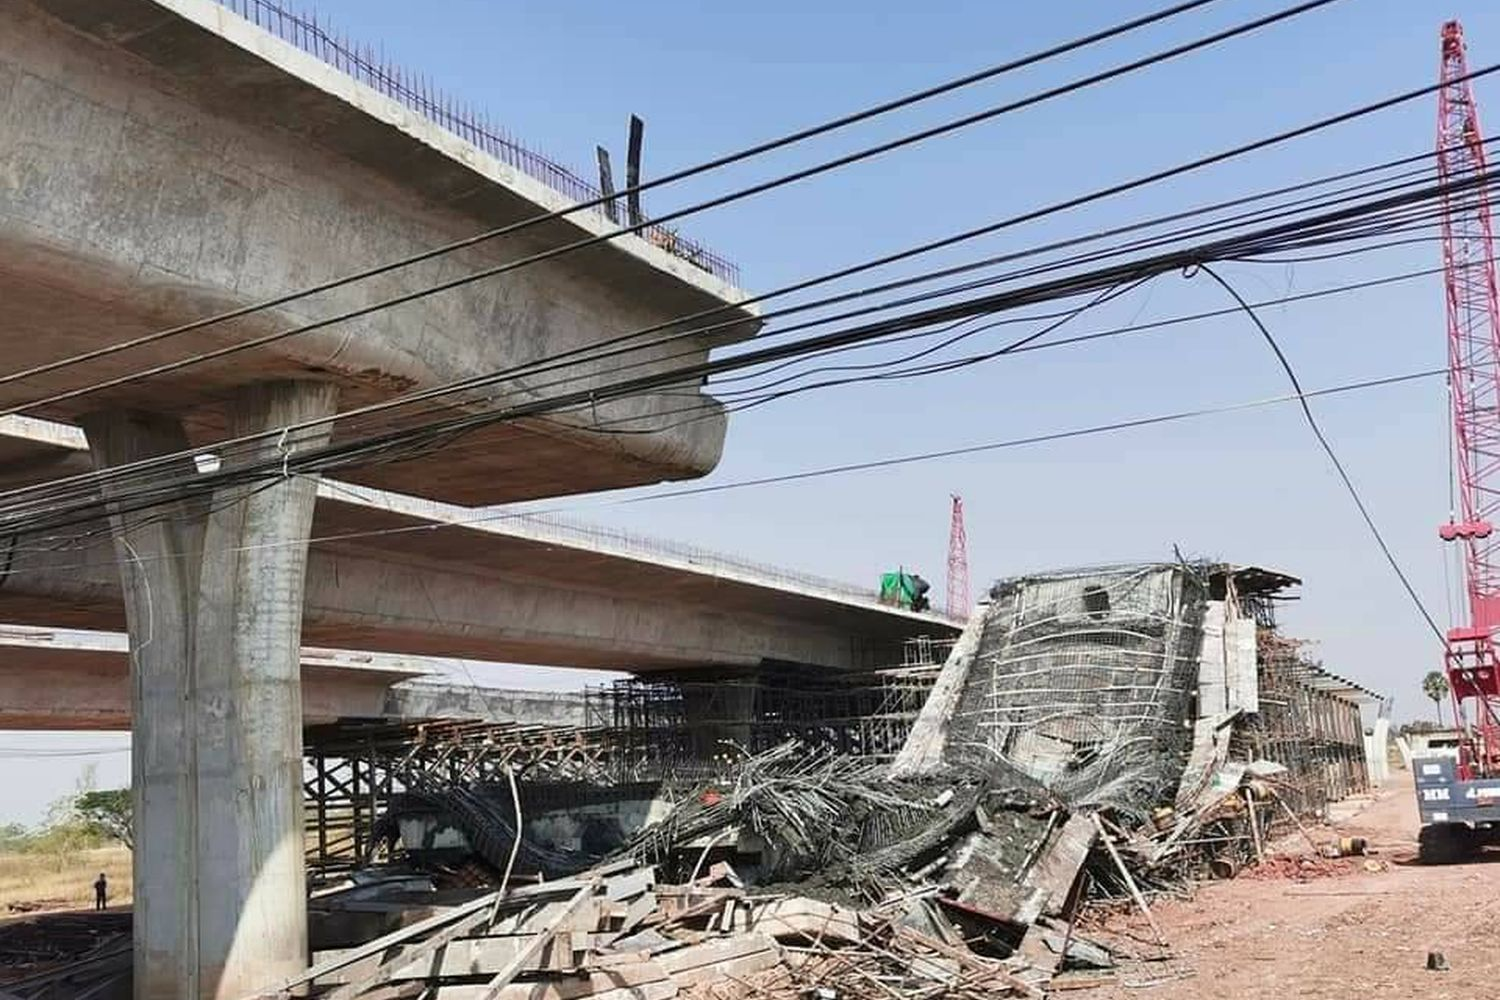 Elevated section of ring road collapses, 10 hurt